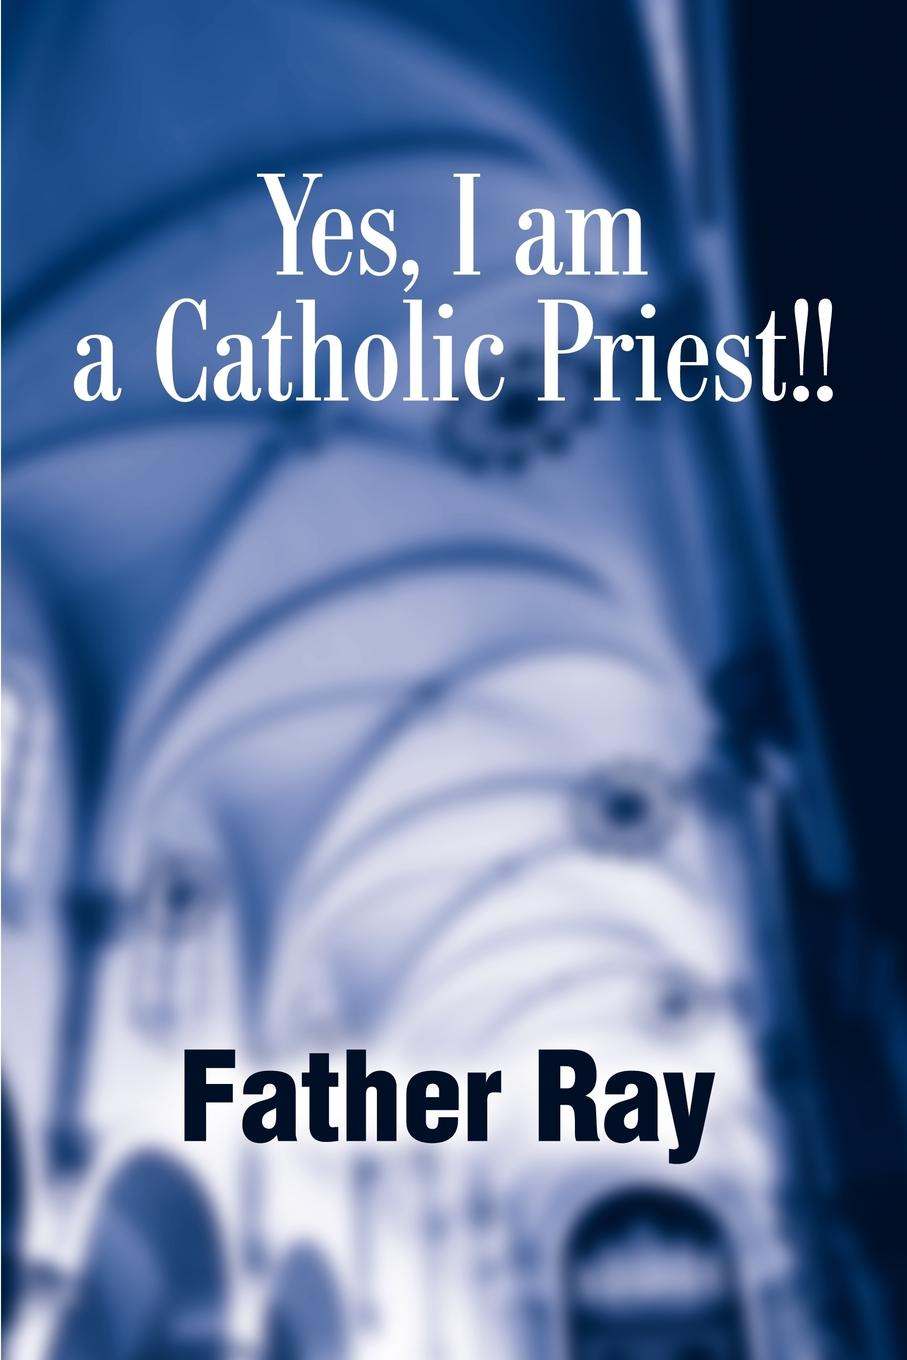 Father Ray Yes, I Am a Catholic Priest!! priest i am through the eyez of the warriorz of light